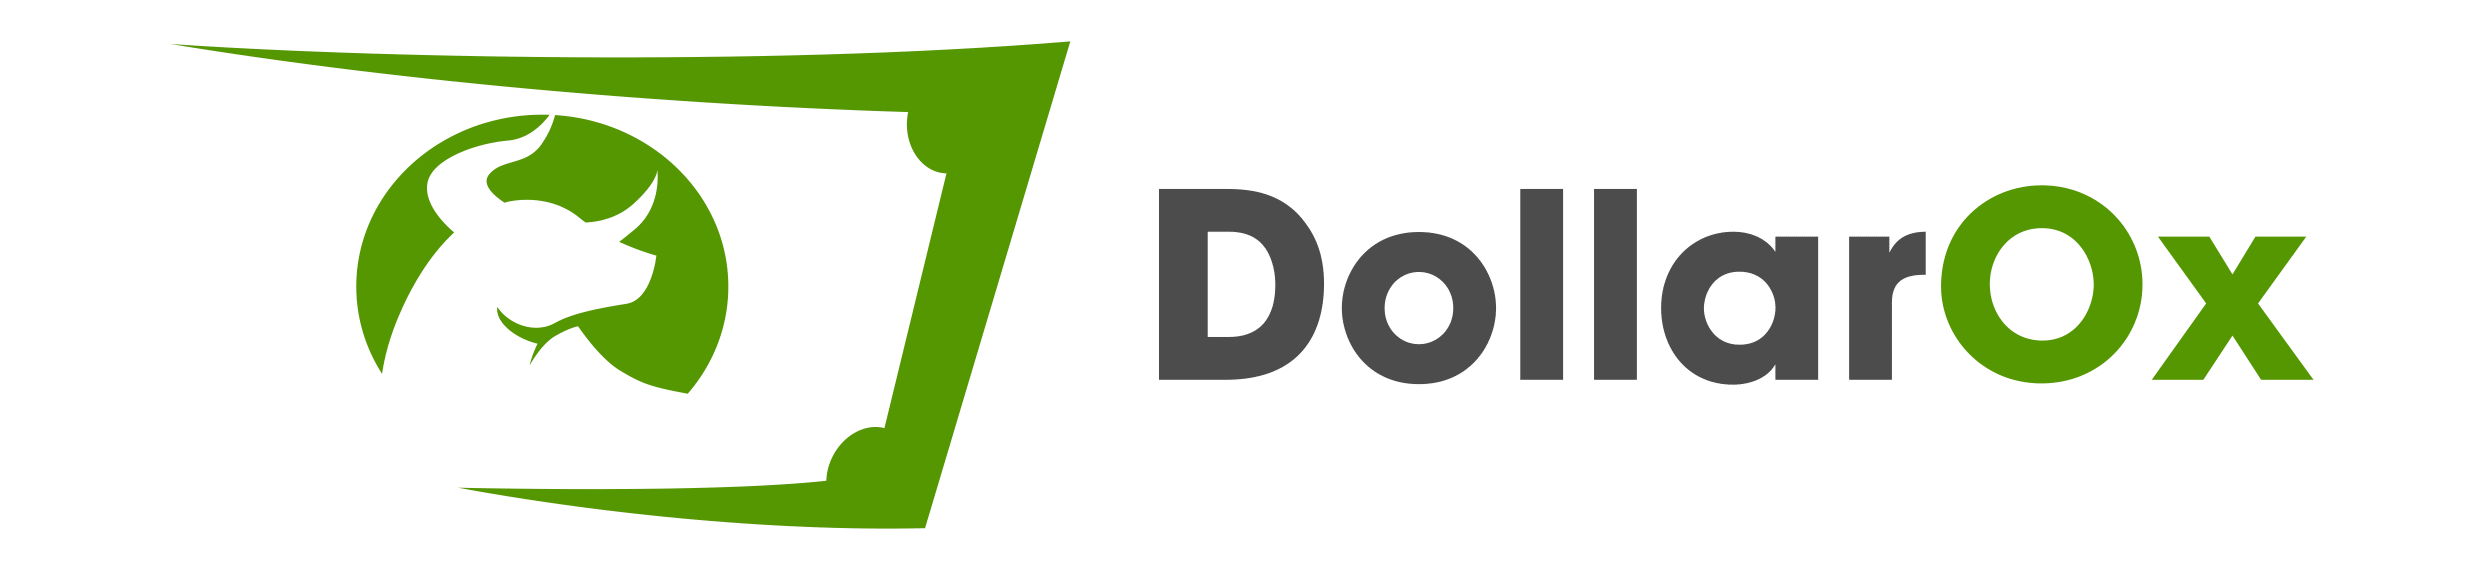 DollarOx Provides Financial Assistance to Businesses Looking to Obtain Equipment 8